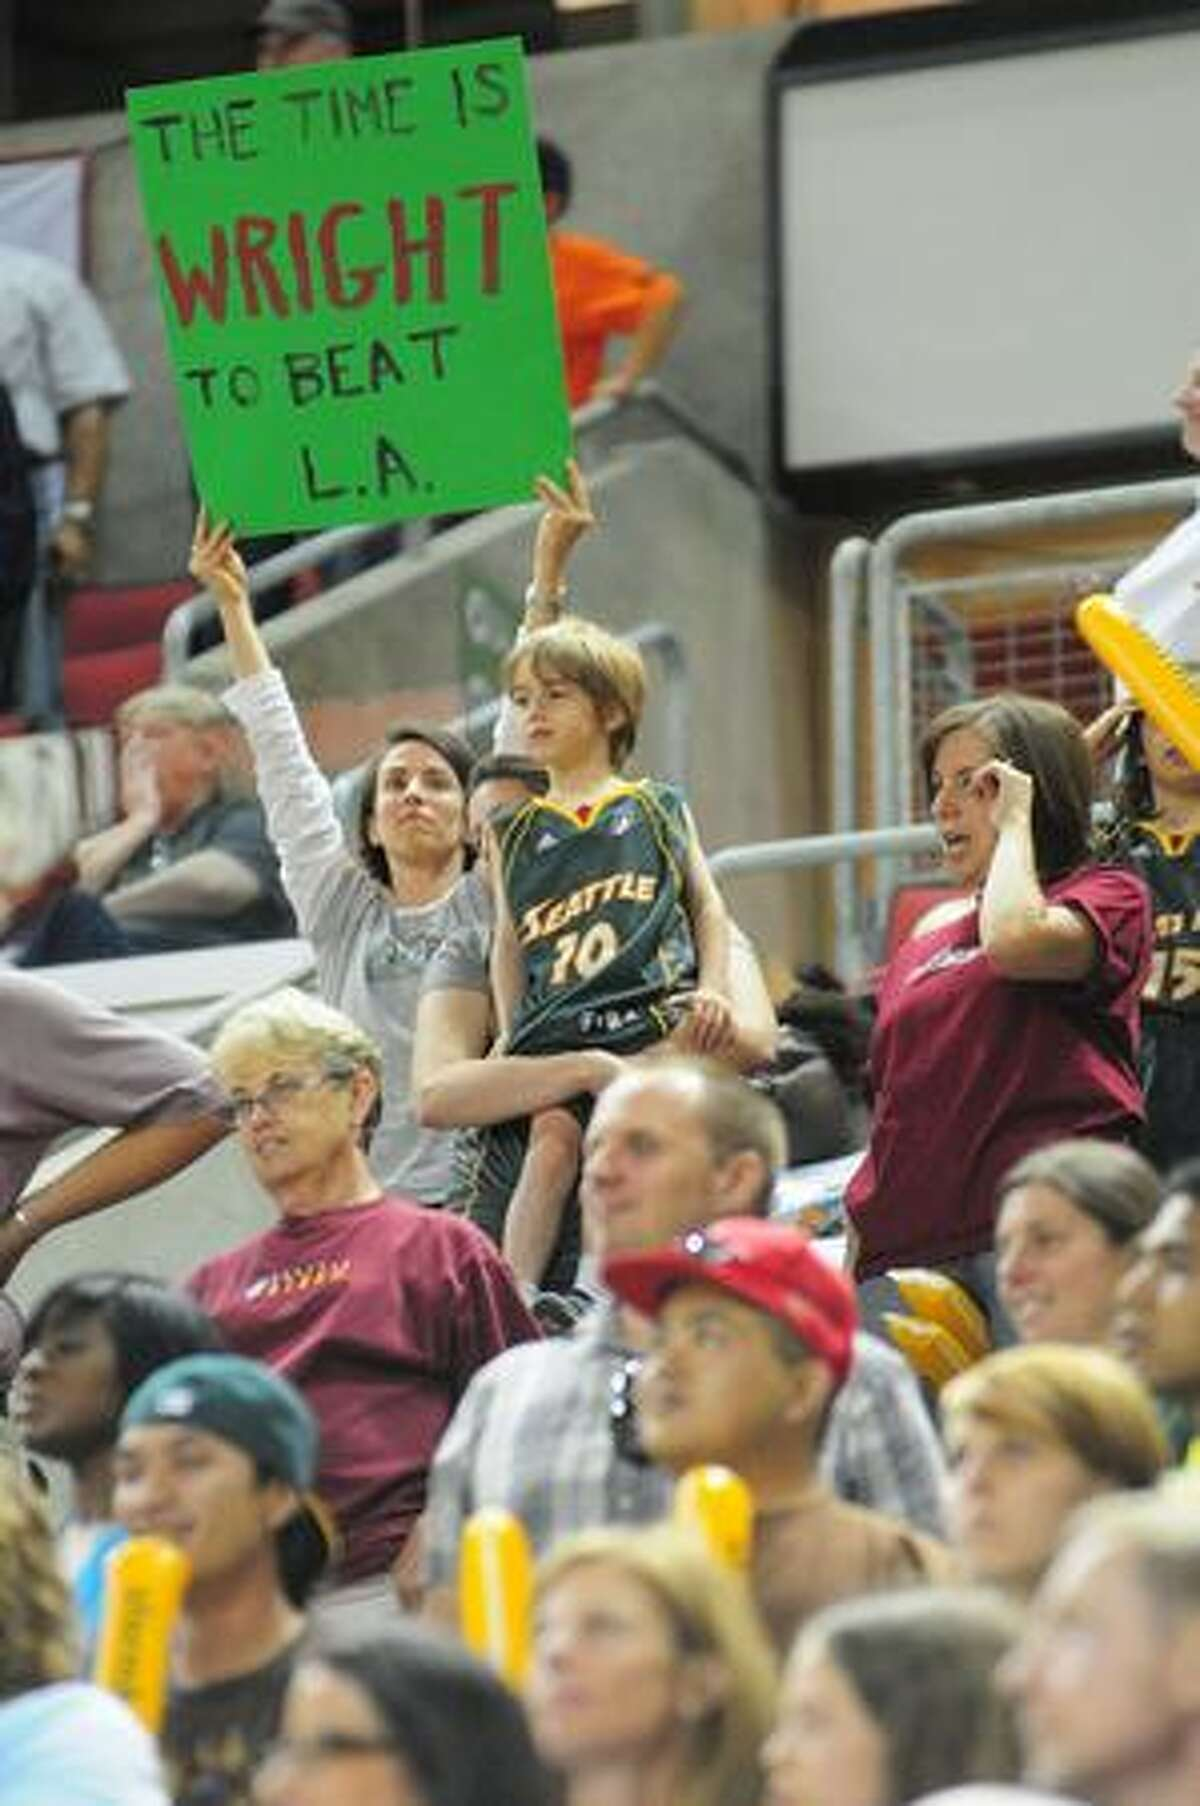 A Seattle Storm fan holds up a sign during the 3rd quarter of play. Photo by Daniel Berman/SeattlePI.com